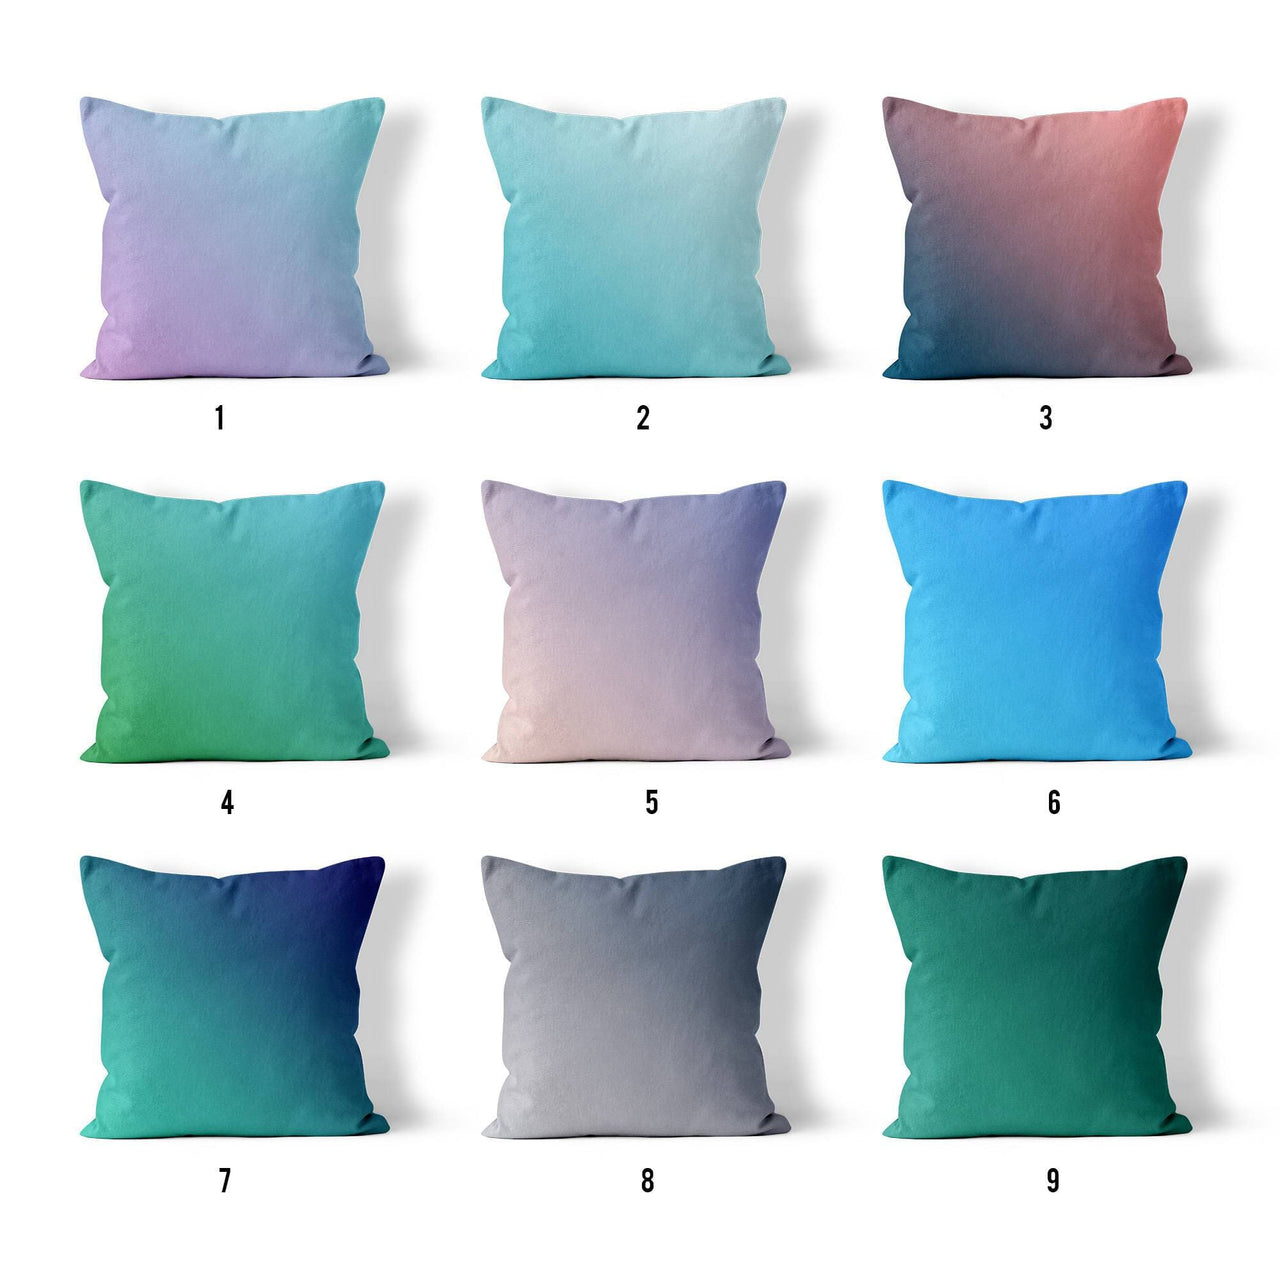 Gradient Throw Pillows, Ombre Throw Pillow, Blue Throw Pillow, Green Throw Pillow, Mermaid Decor, Pretty Throw Pillows, Jewel Tone Pillow